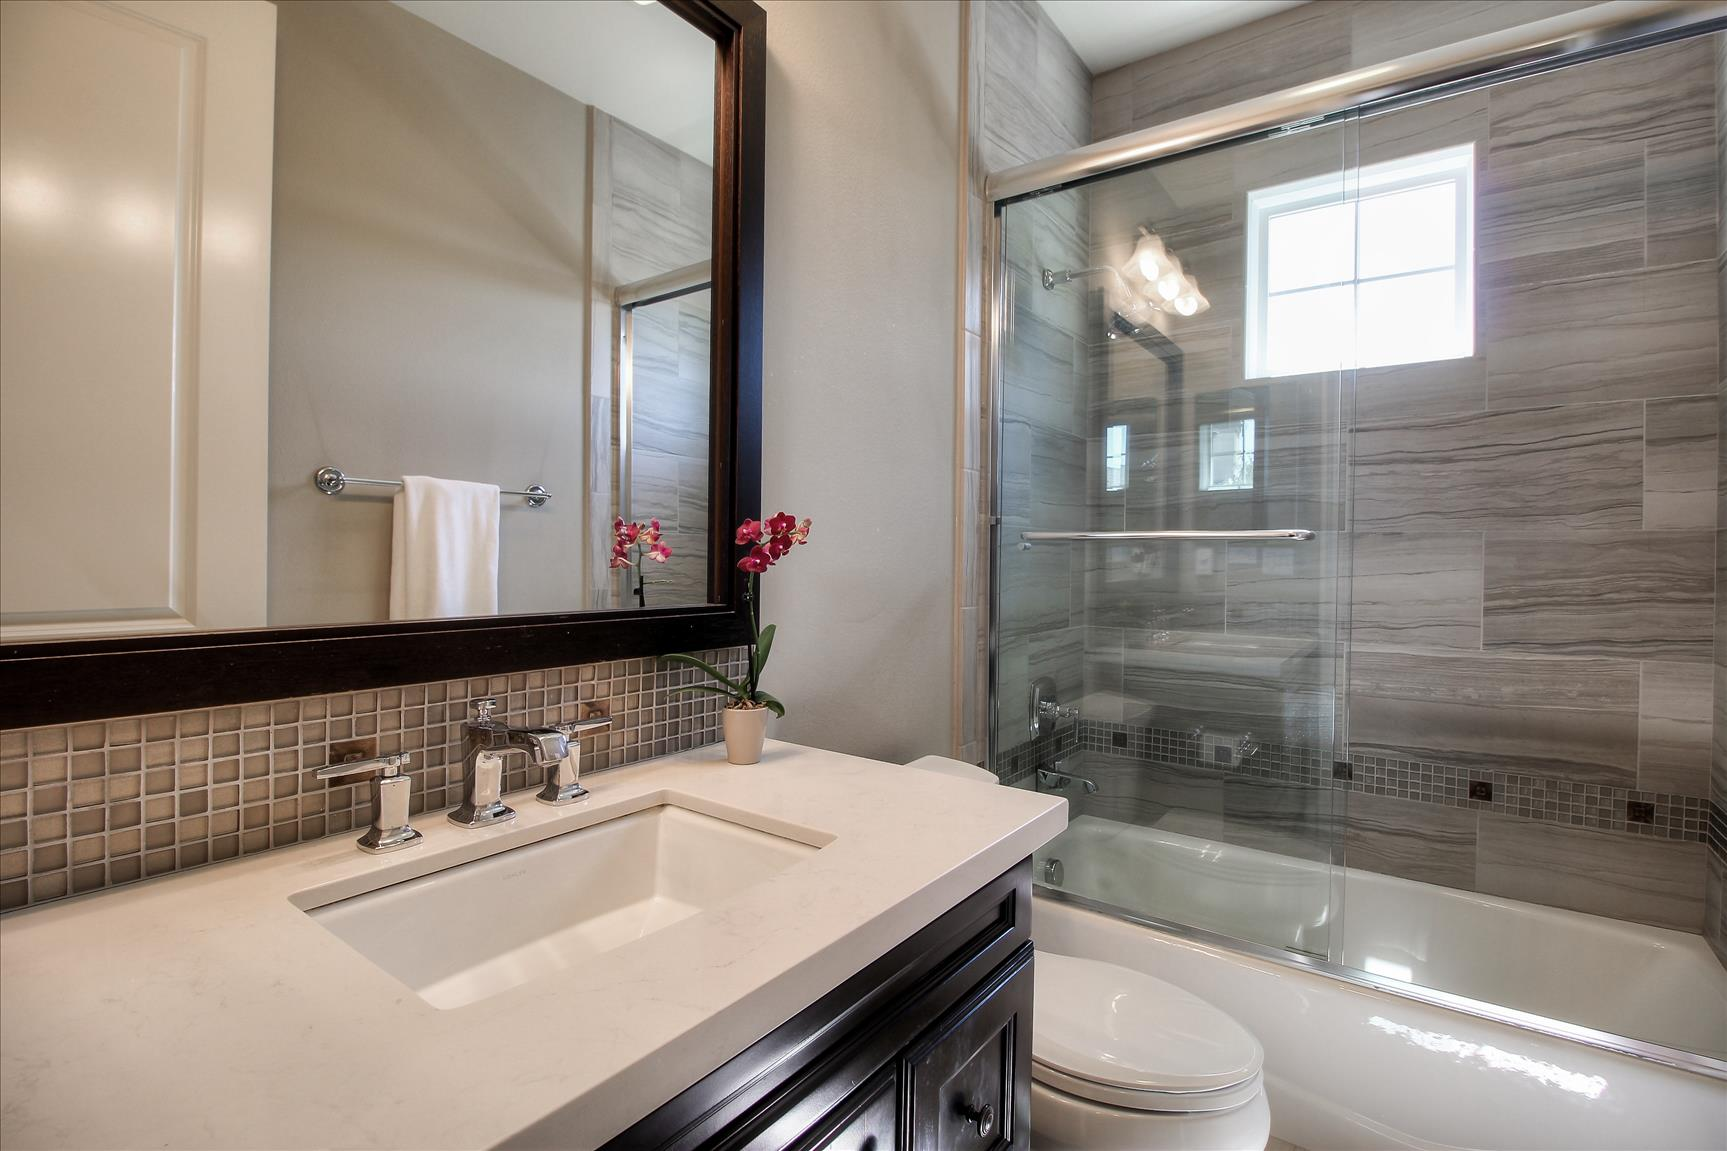 17471 Kennebunk Ln, Huntington Beach, CA  9264958.jpg